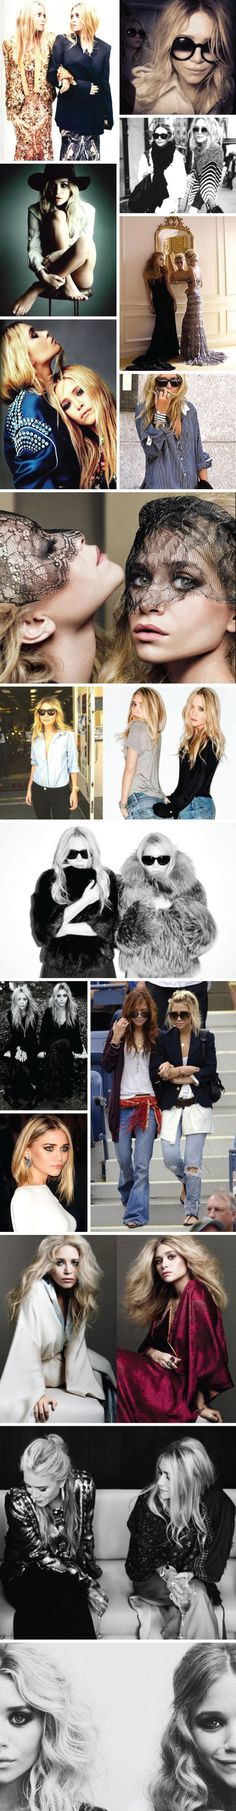 mary kate and ashley olsen style inspiration www.llbblog.com